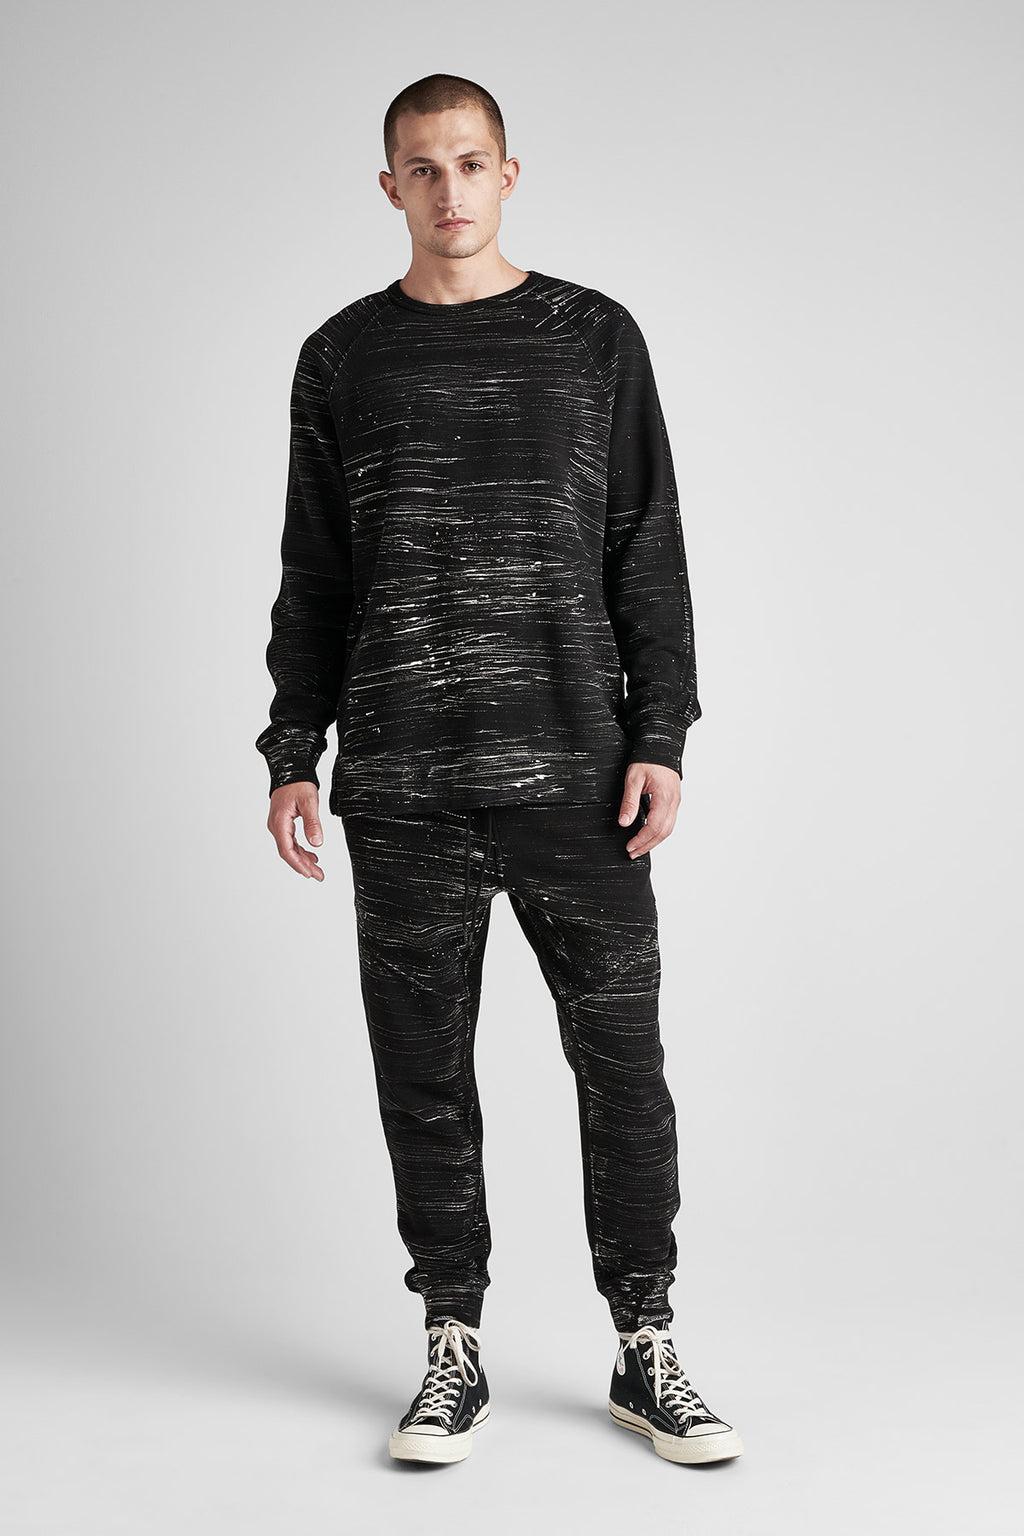 PULLOVER CREWNECK SWEATER - BLACK MARBLE - Image 1